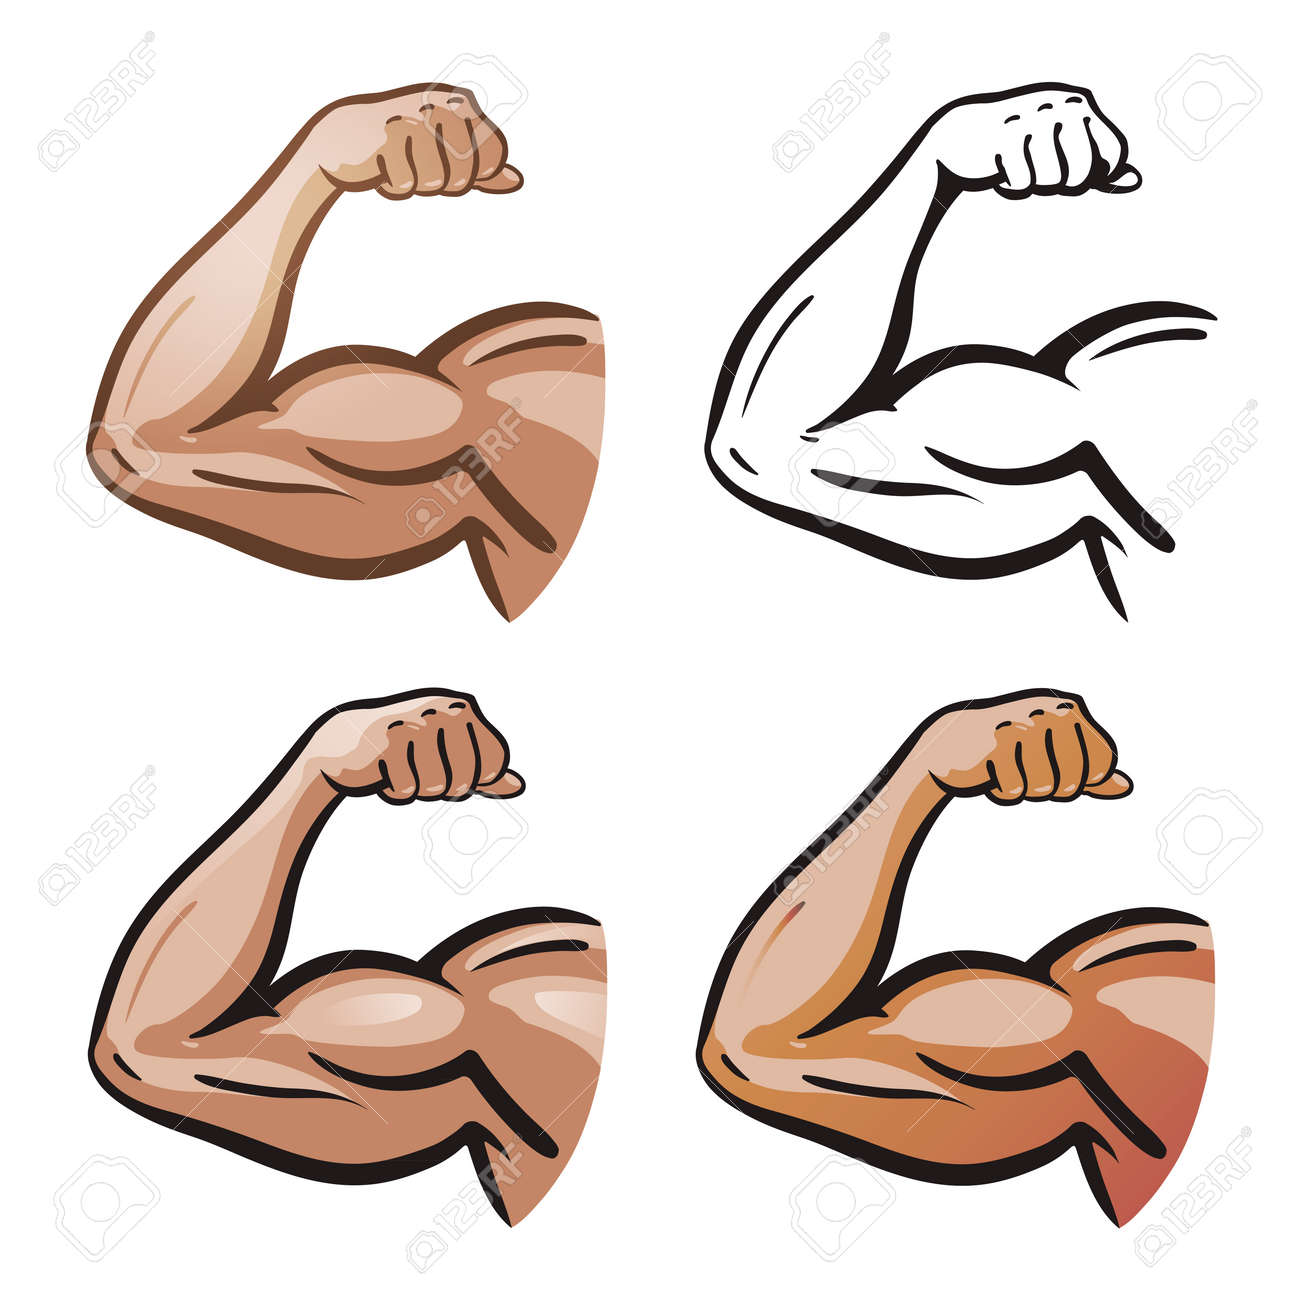 Strong Male Arm, Hand Muscles, Biceps Icon Or Symbol. Gym, Health ...